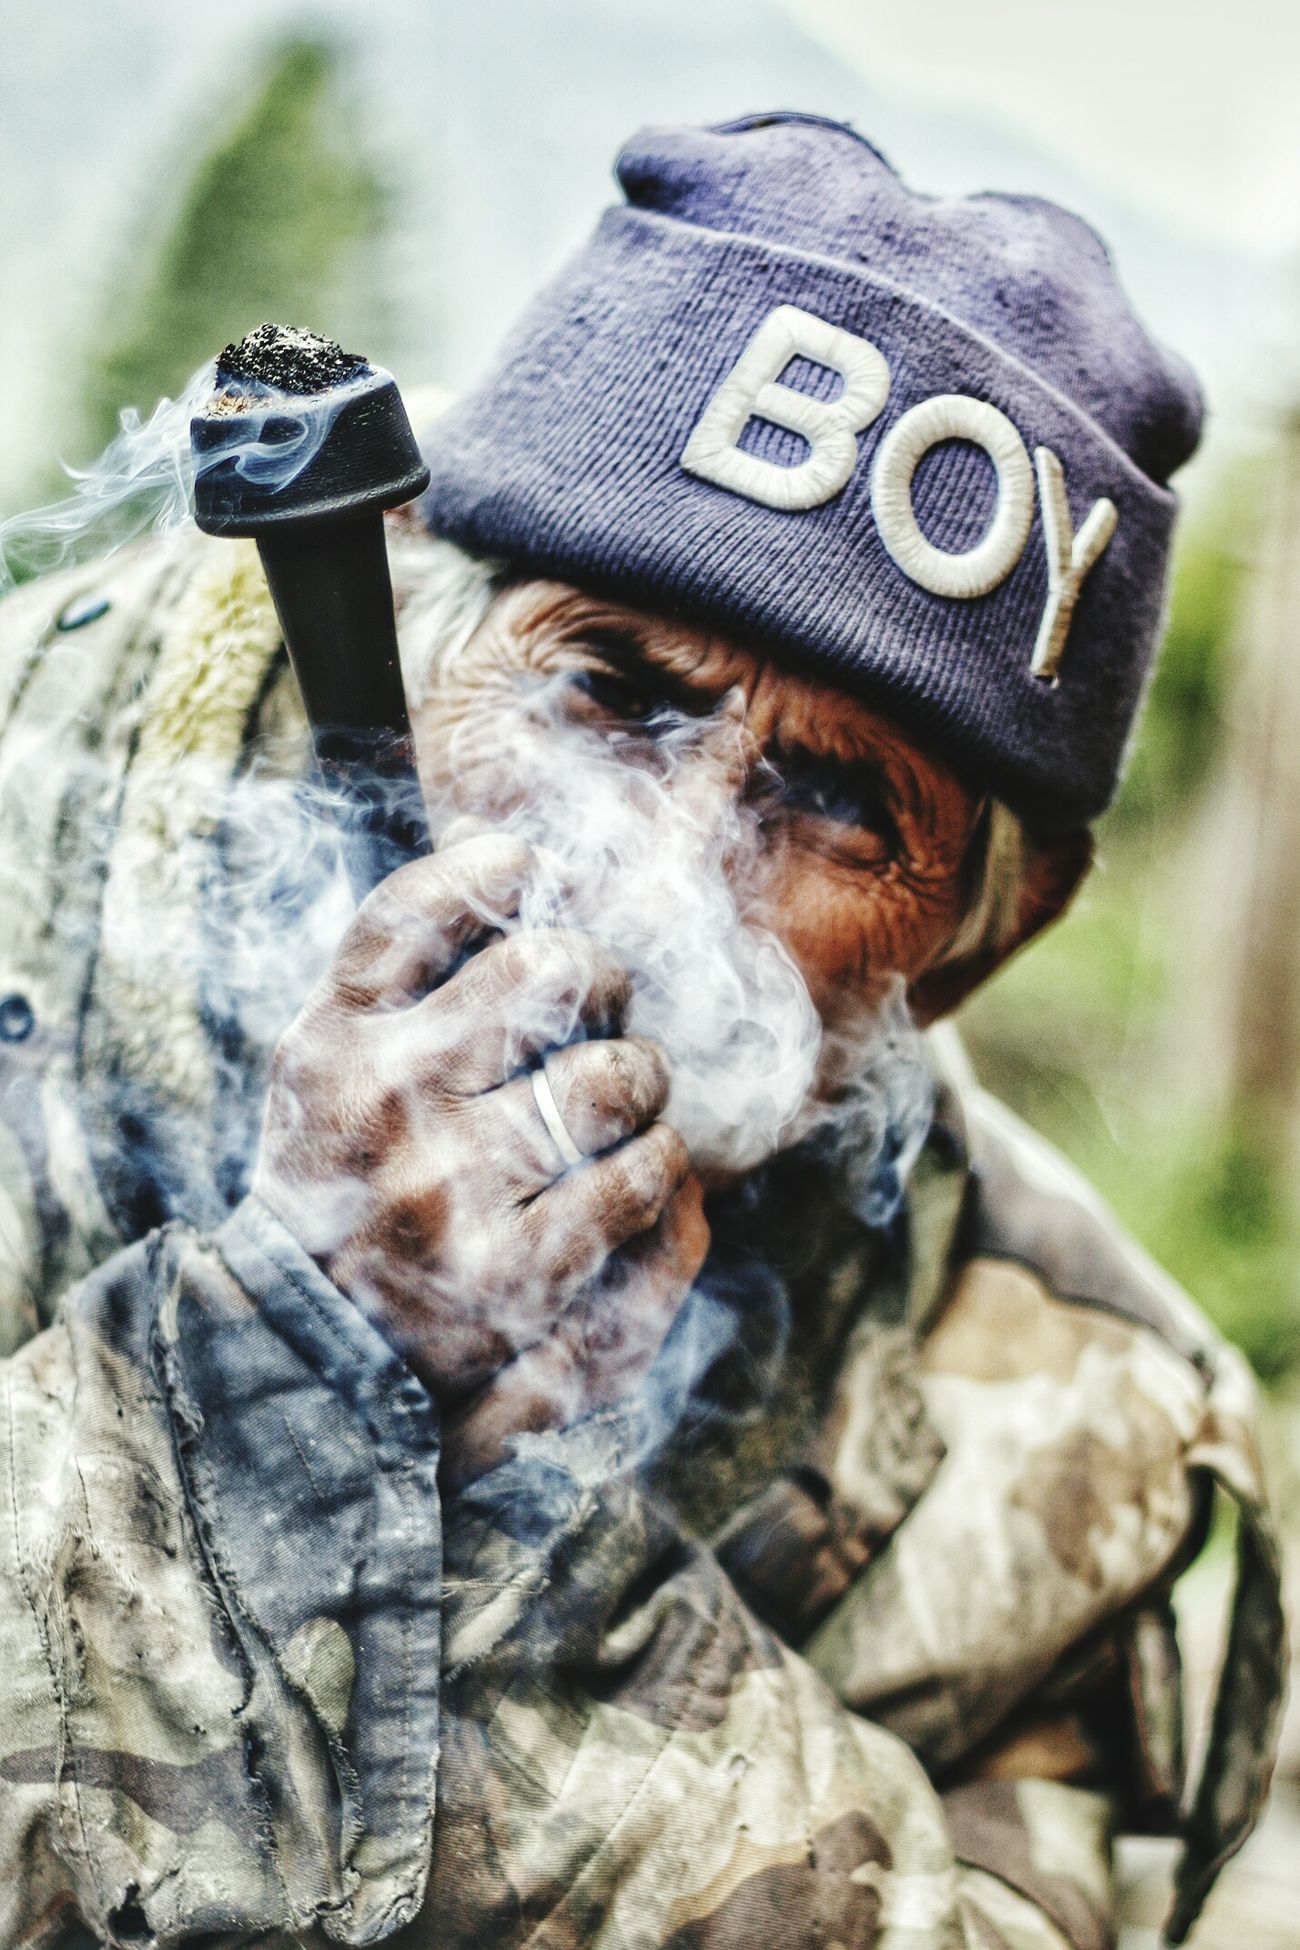 Smoke Weed Attitude Wrinkle Boy Cap Viilage Man Portrait Looks